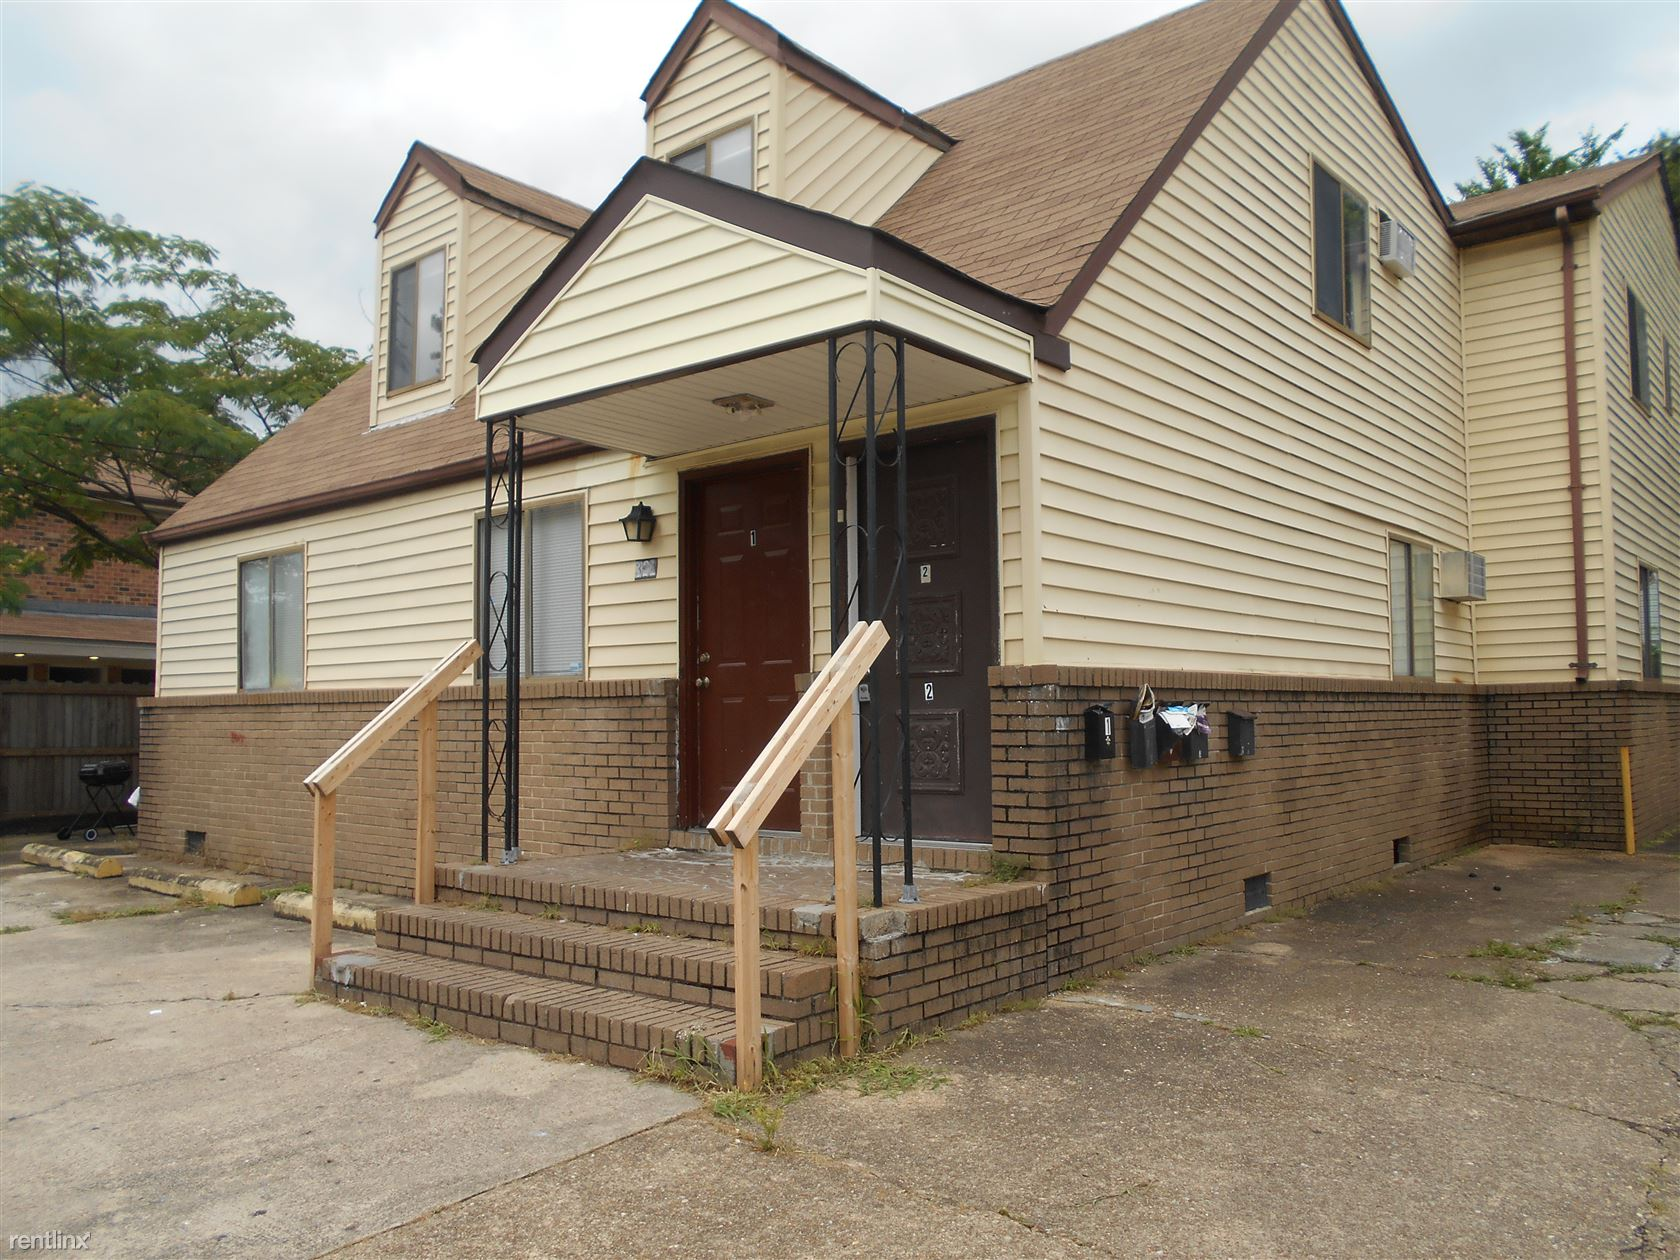 326 Ashlawn Dr Apt 2